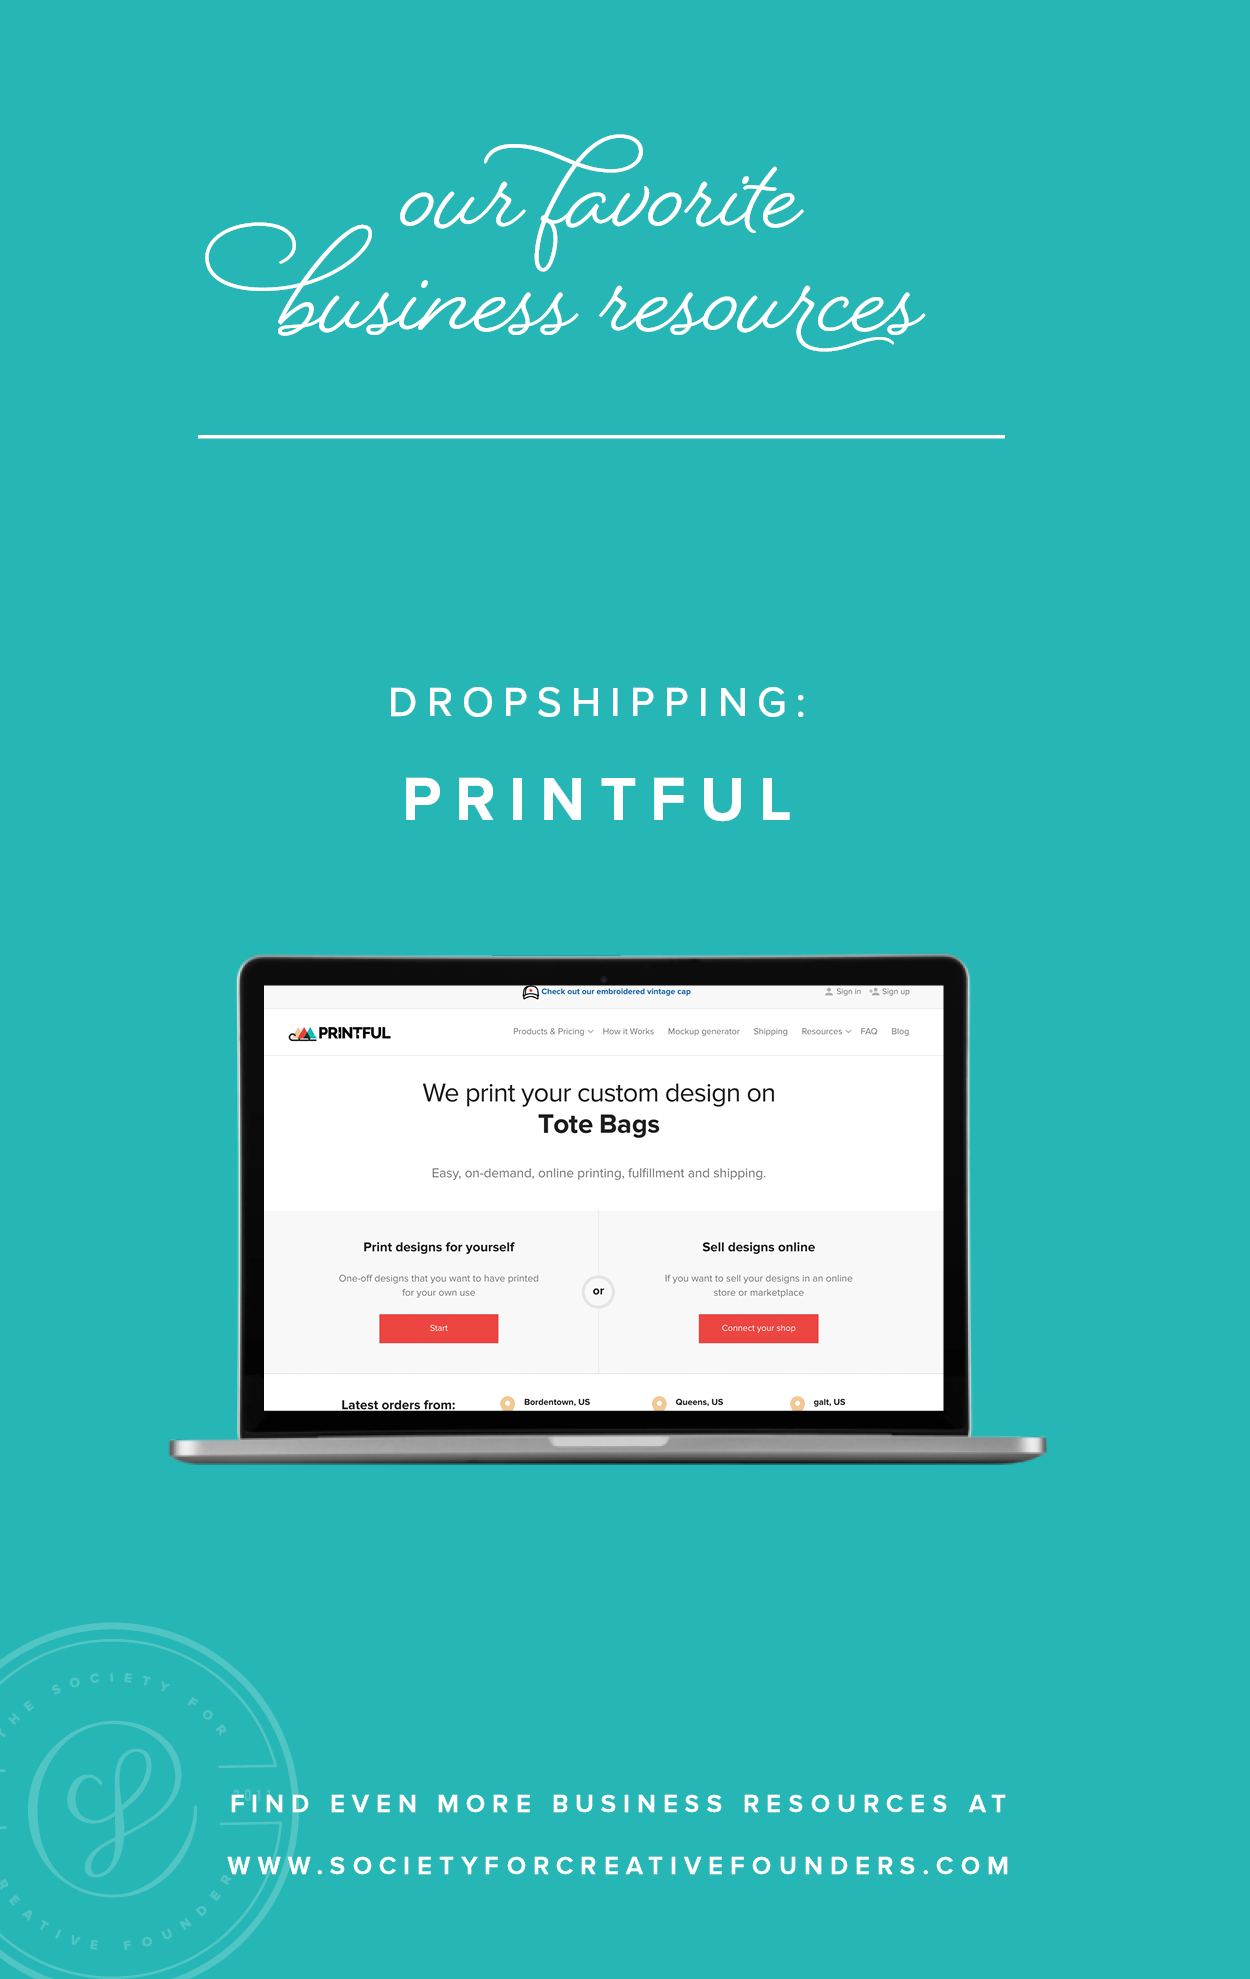 Dropshipping with Printful - Favorite Business Resources from Society for Creative Founders